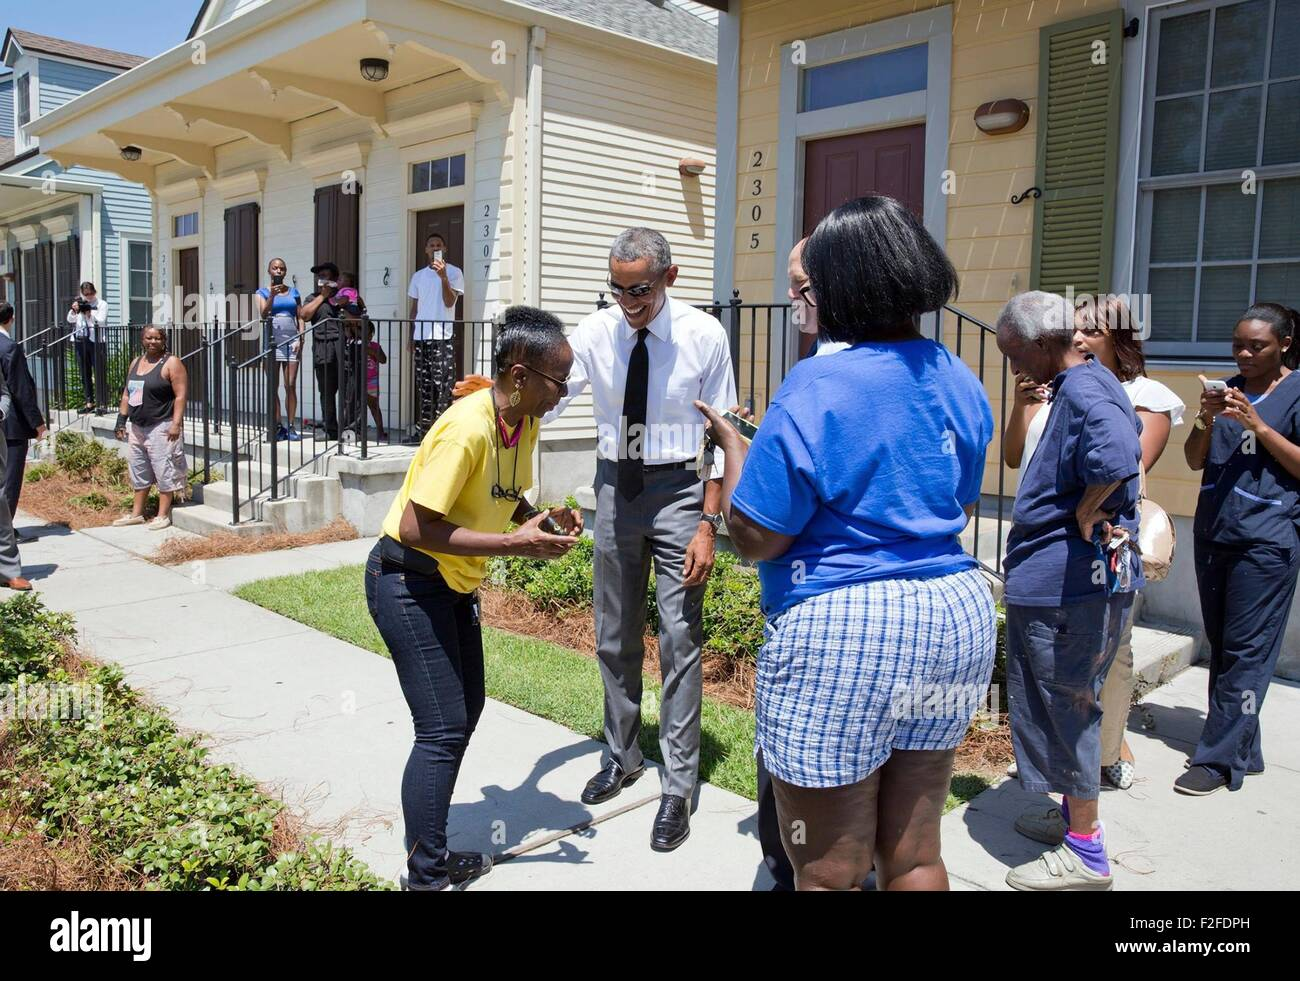 U.S. President Barack Obama jokes with residents in front of their homes during a walk through the Treme neighborhood - Stock Image